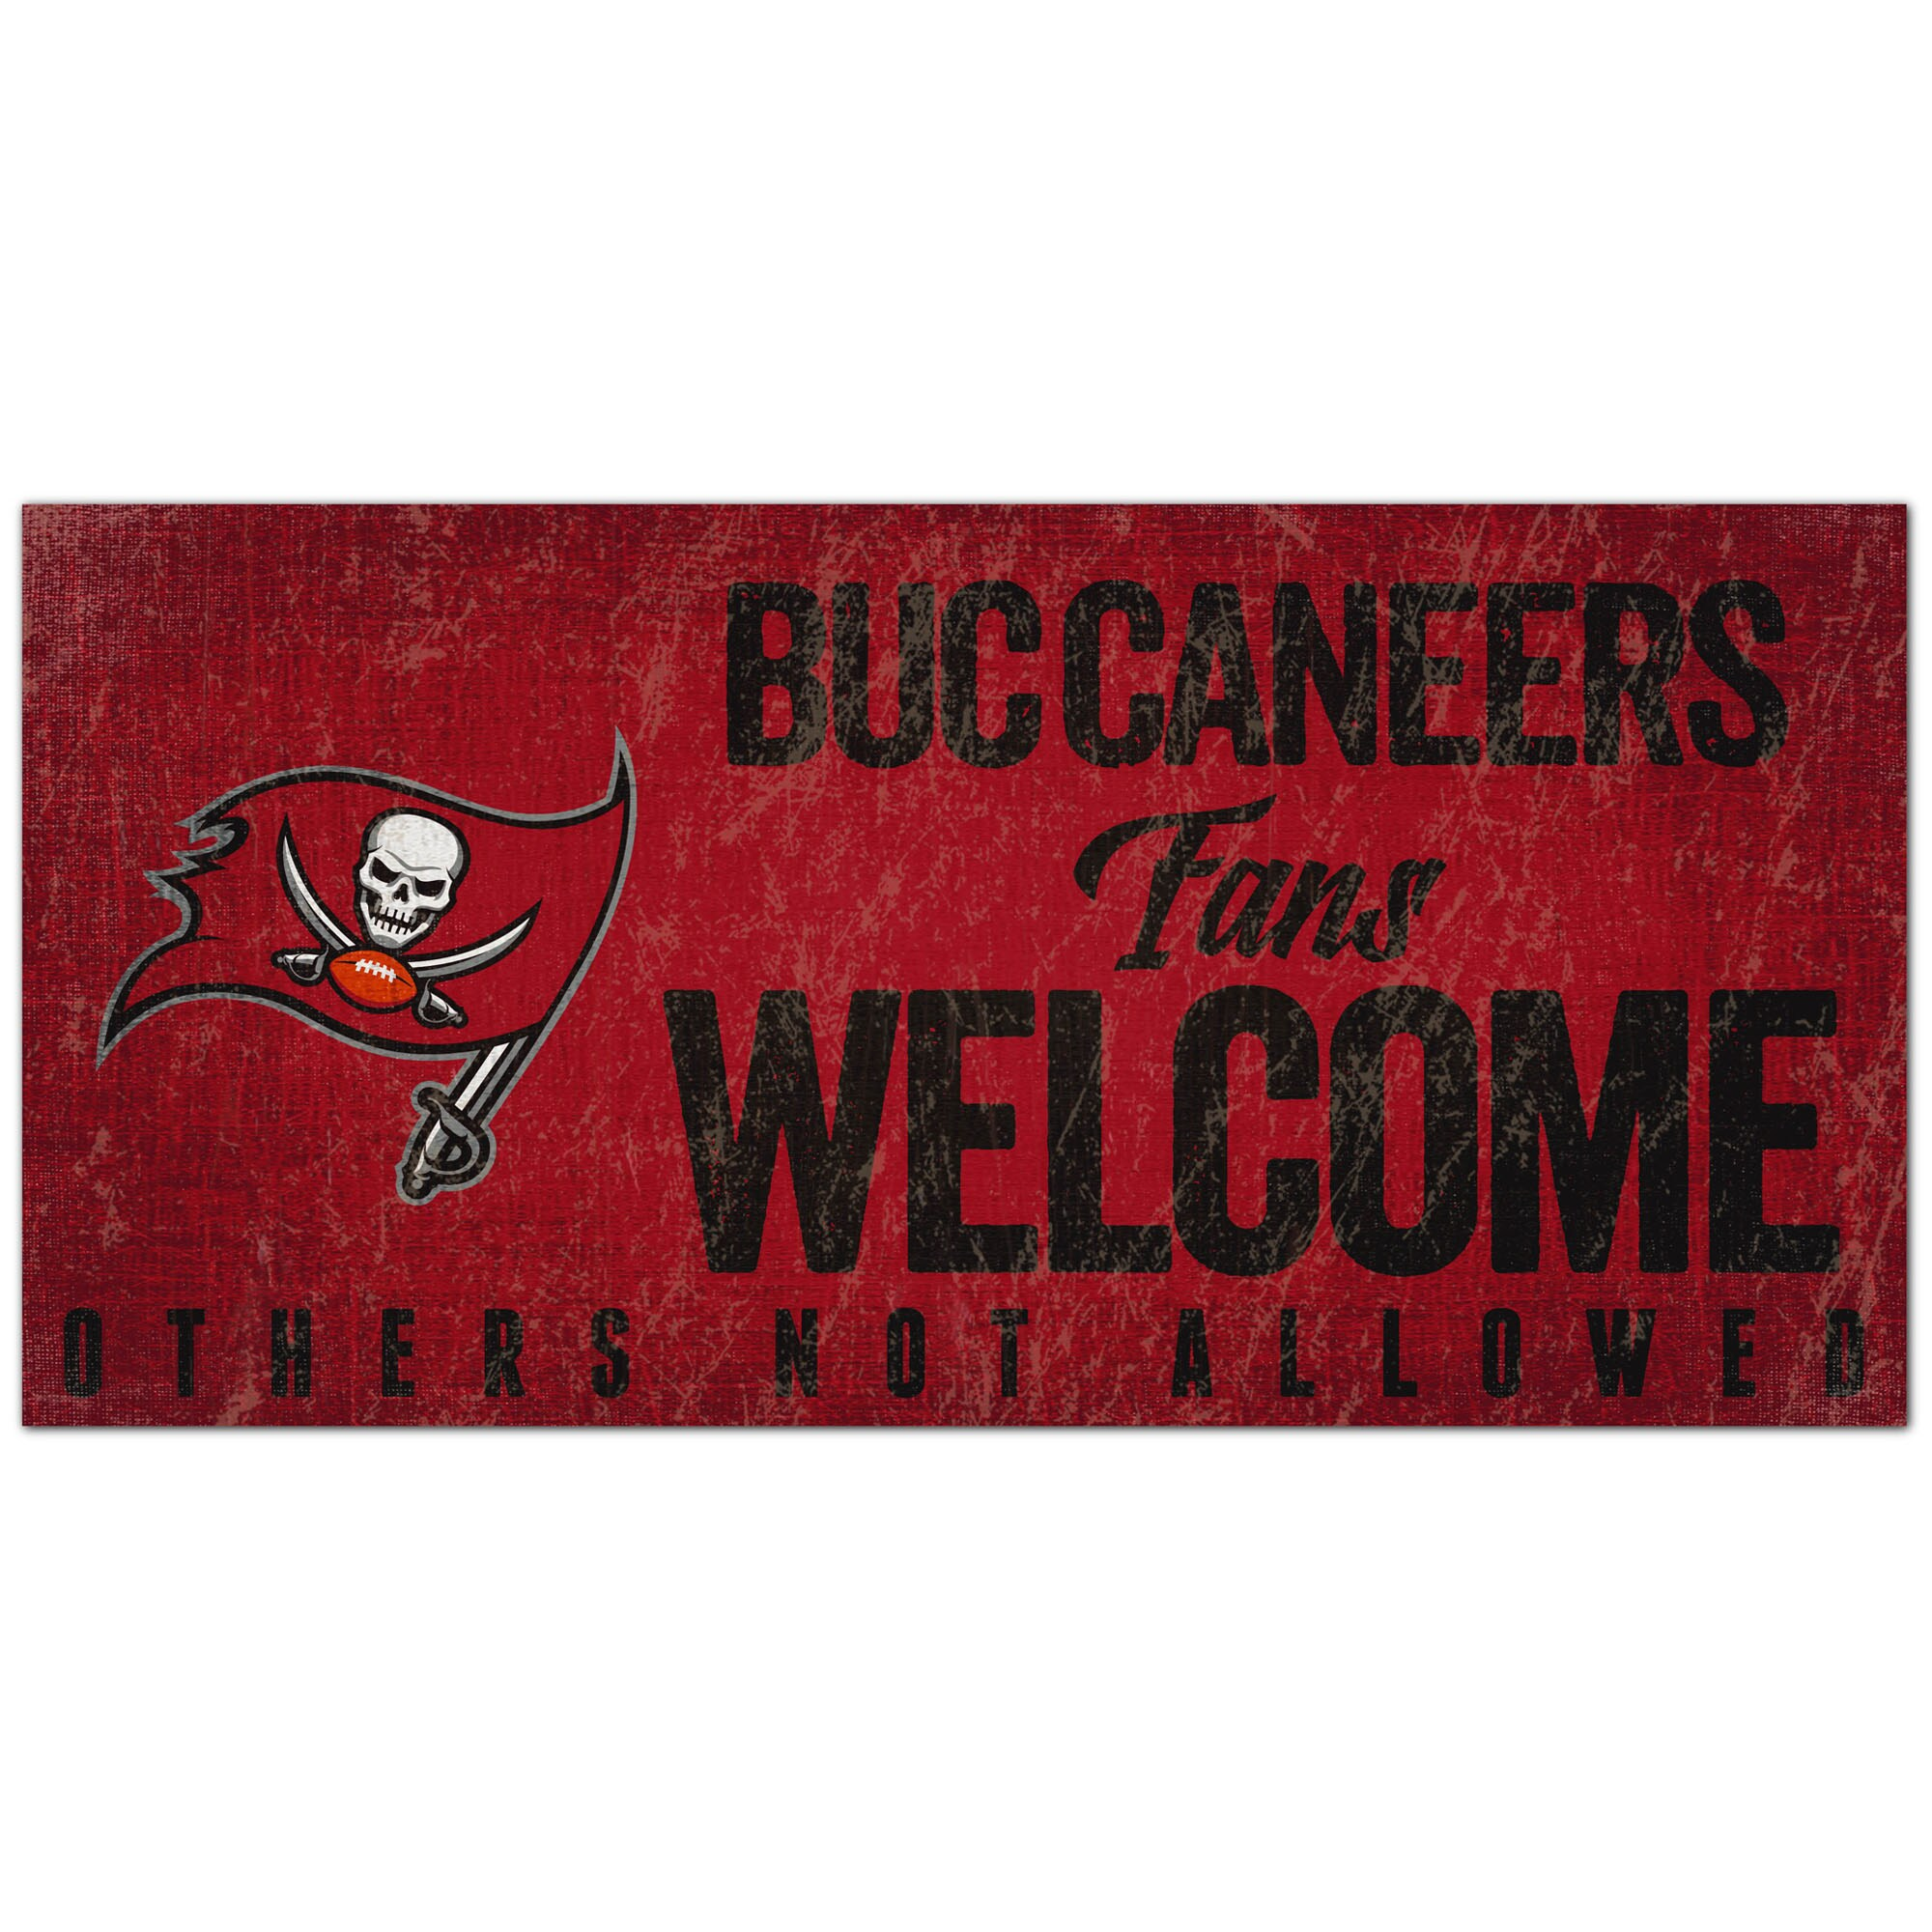 "Tampa Bay Buccaneers 6"" x 12"" Fans Welcome Sign"